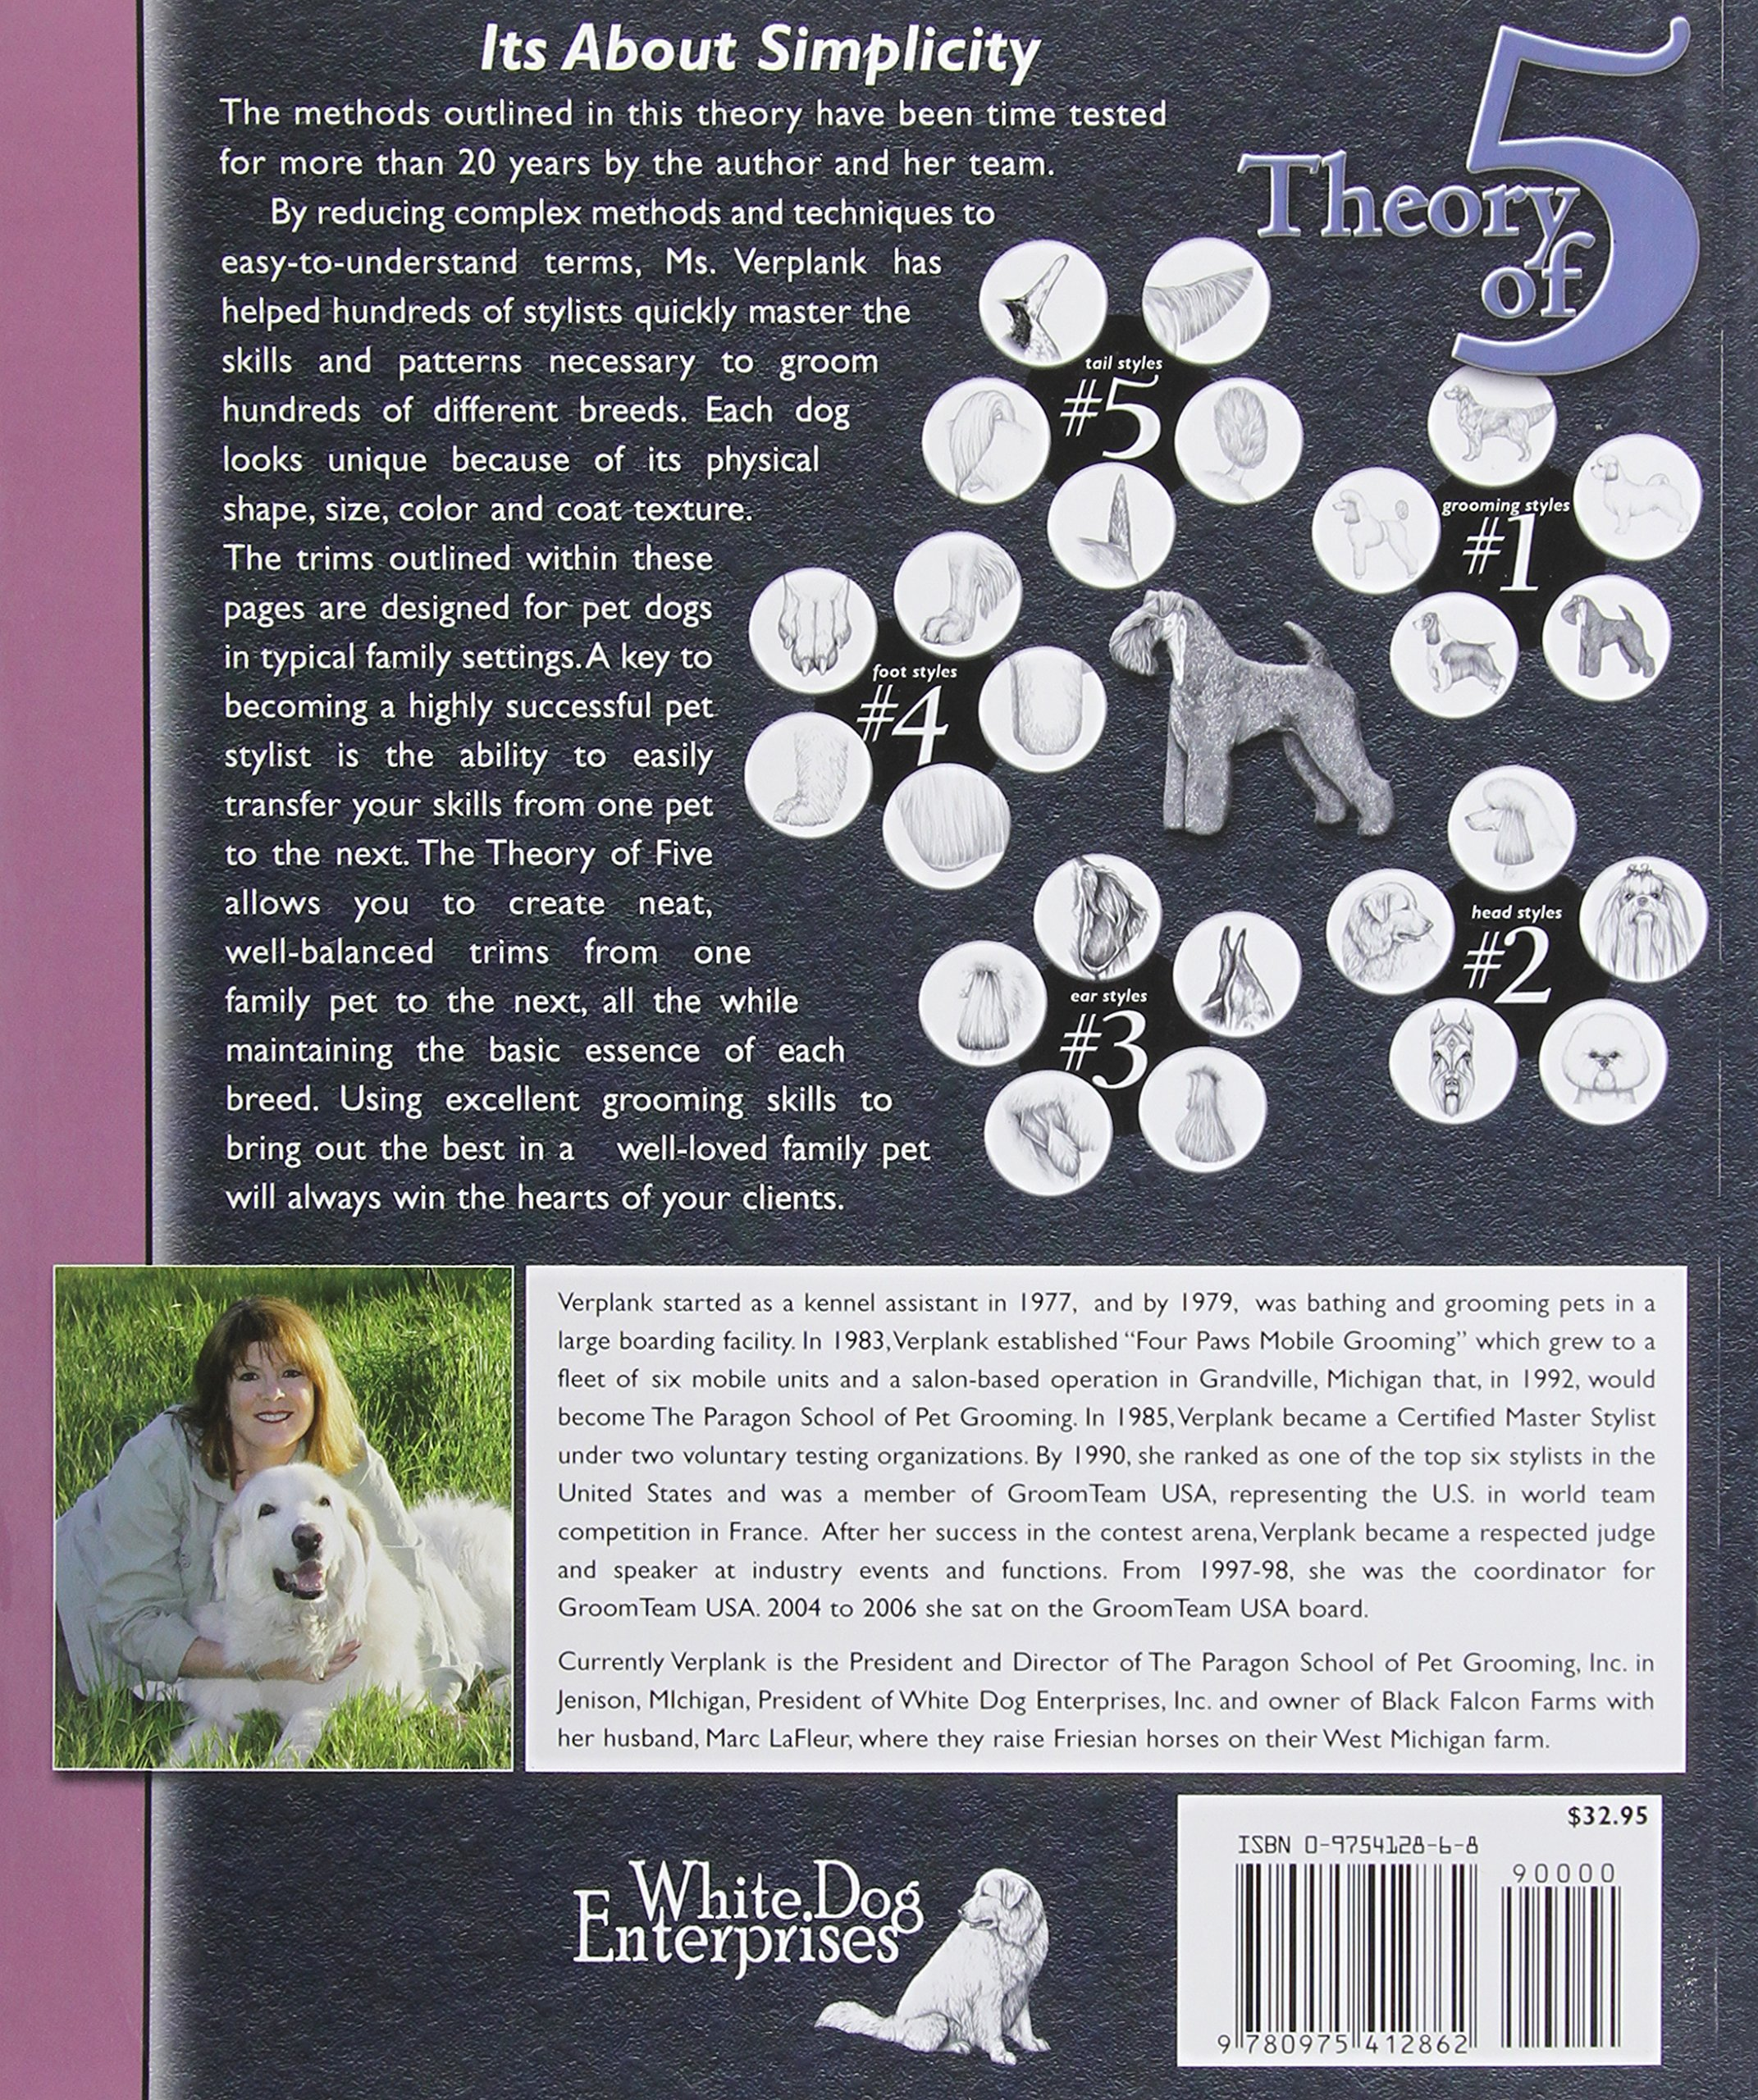 Theory of Five Book by Melissa Verplank